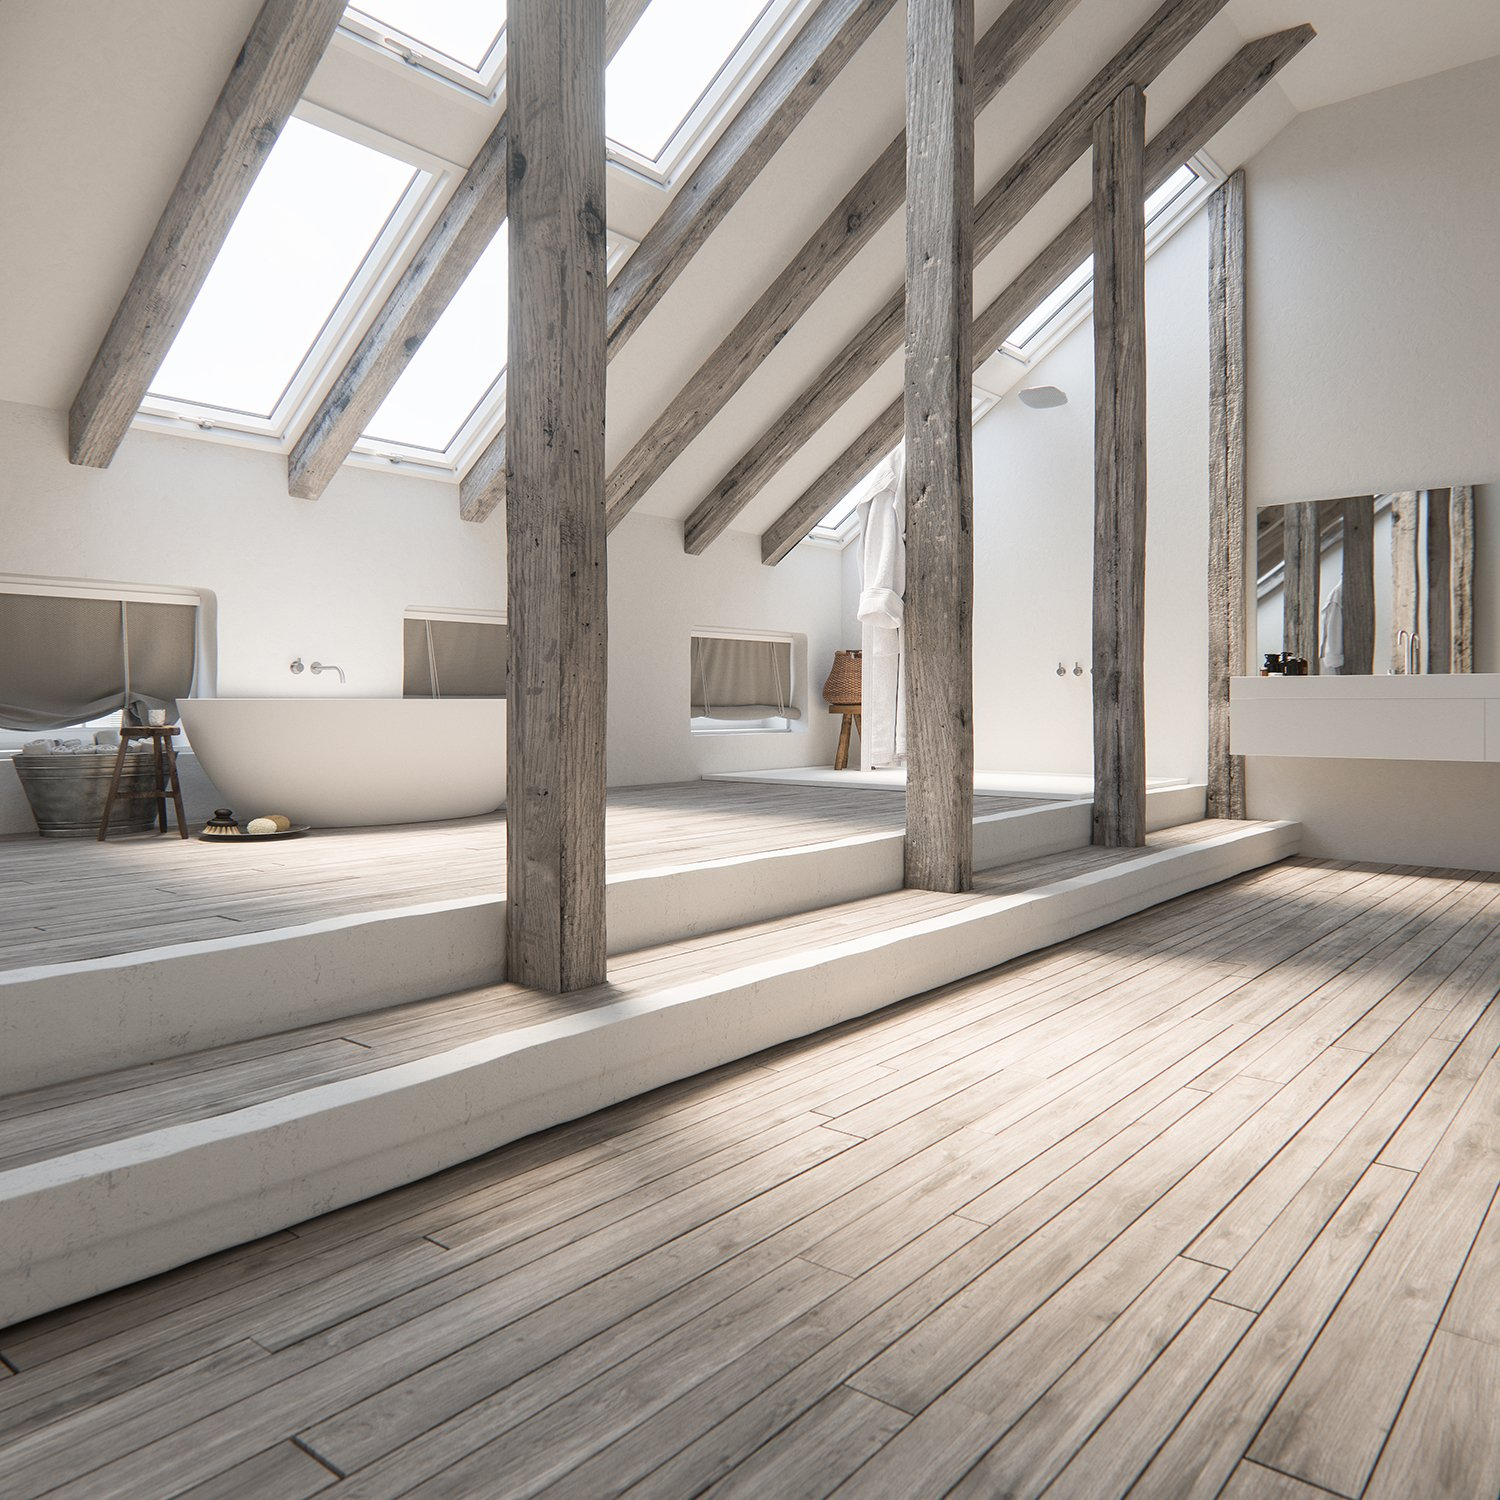 3d interior and architectural visualizations, CGI